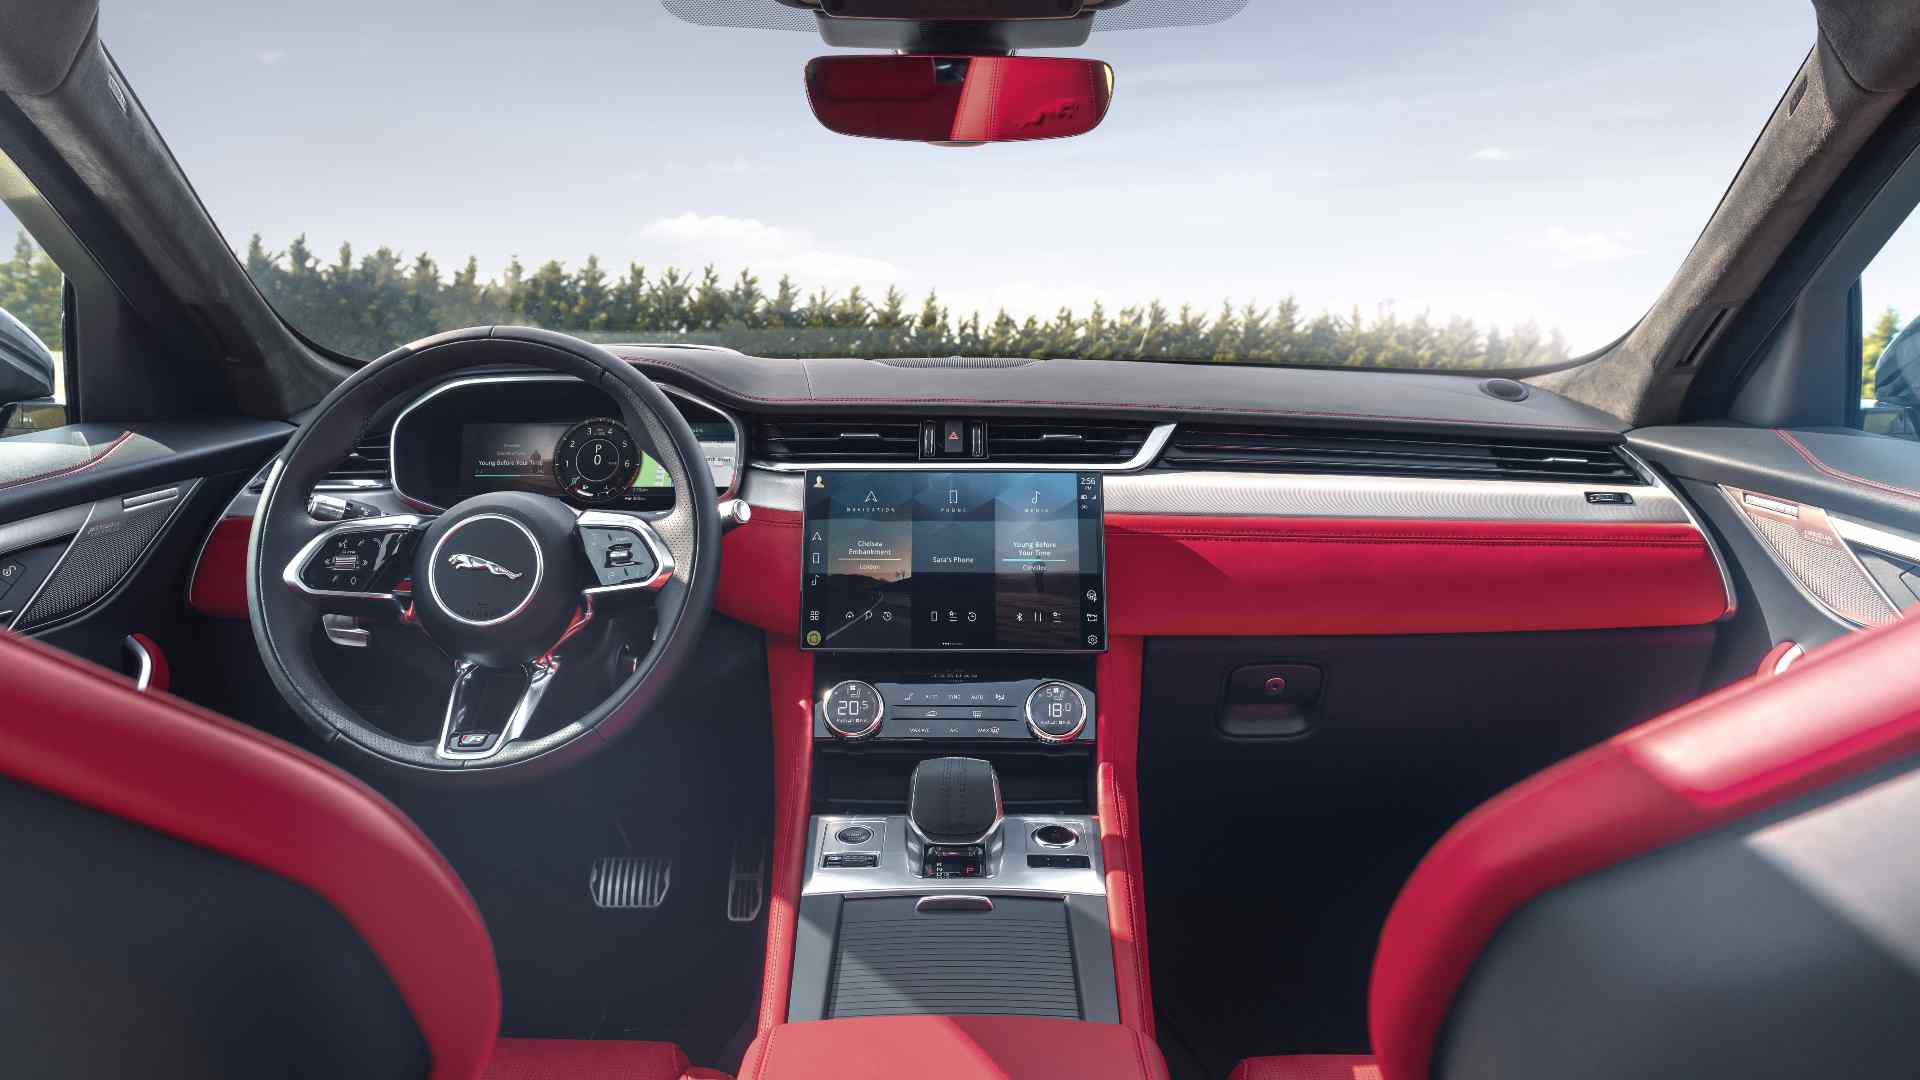 New 11.4-inch touchscreen takes centre stage on the redesigned dash. Image: Jaguar